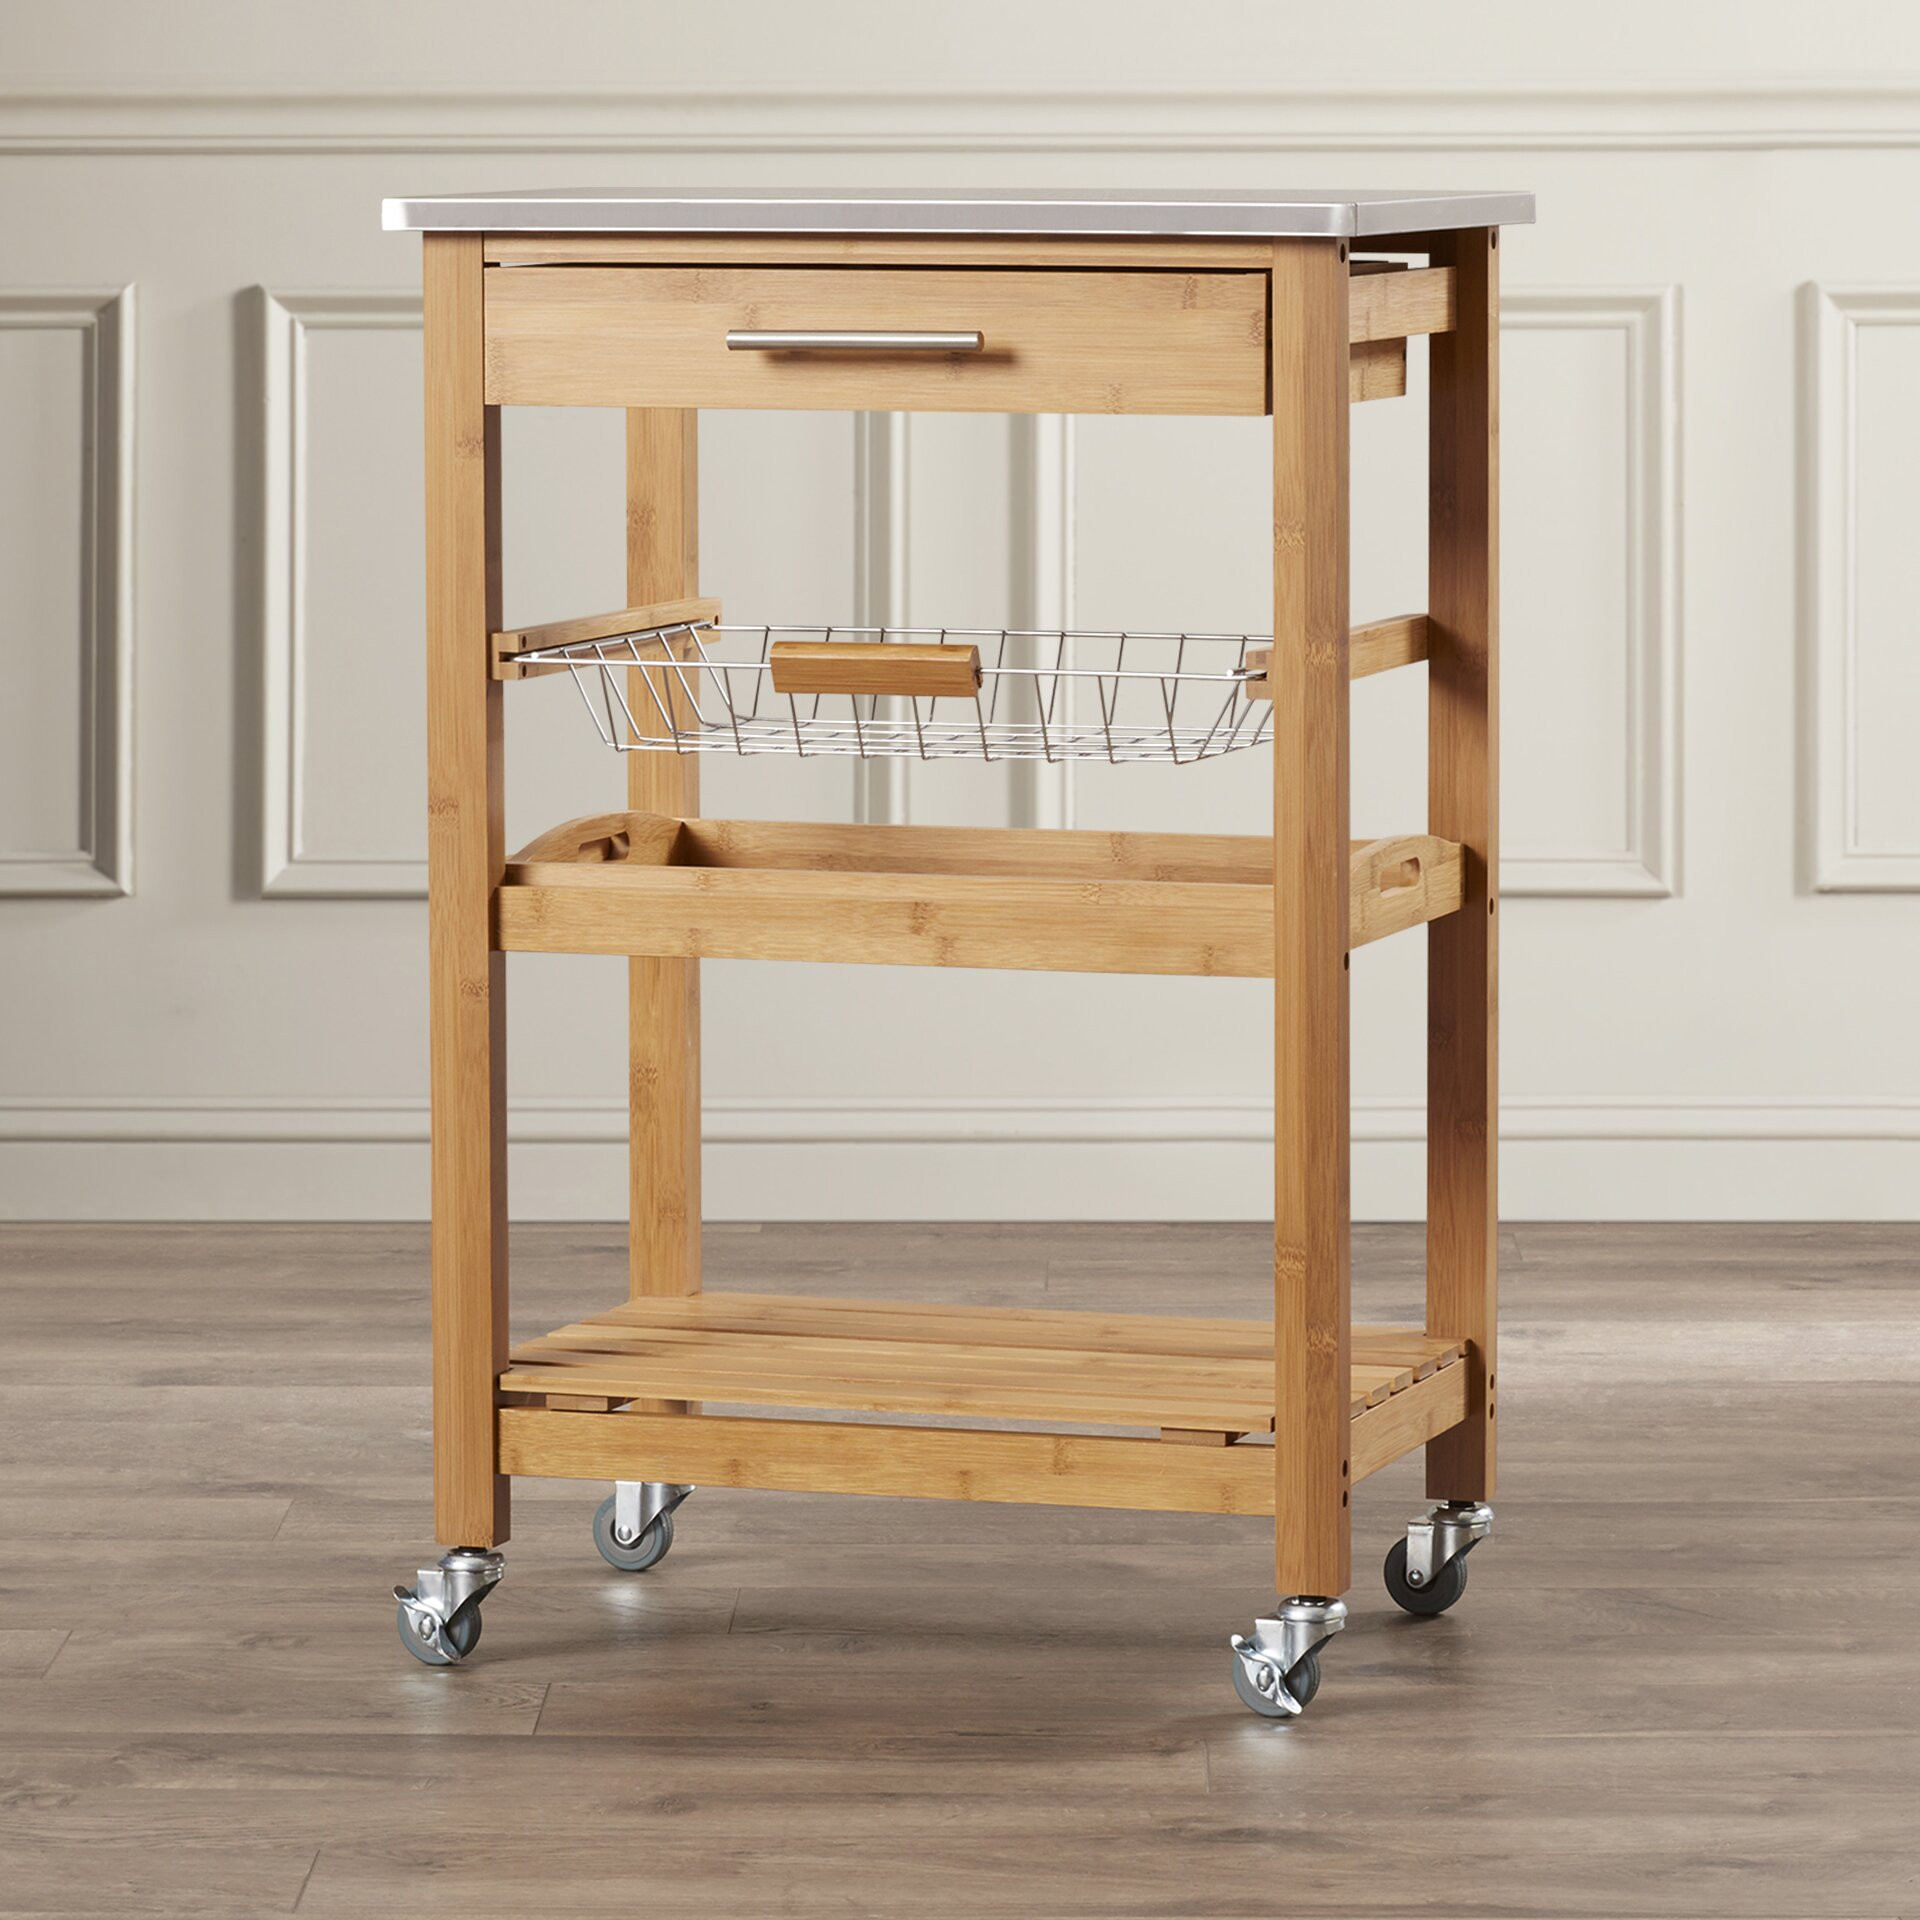 Stainless Steel Top Kitchen Cart – Home design and Decorating